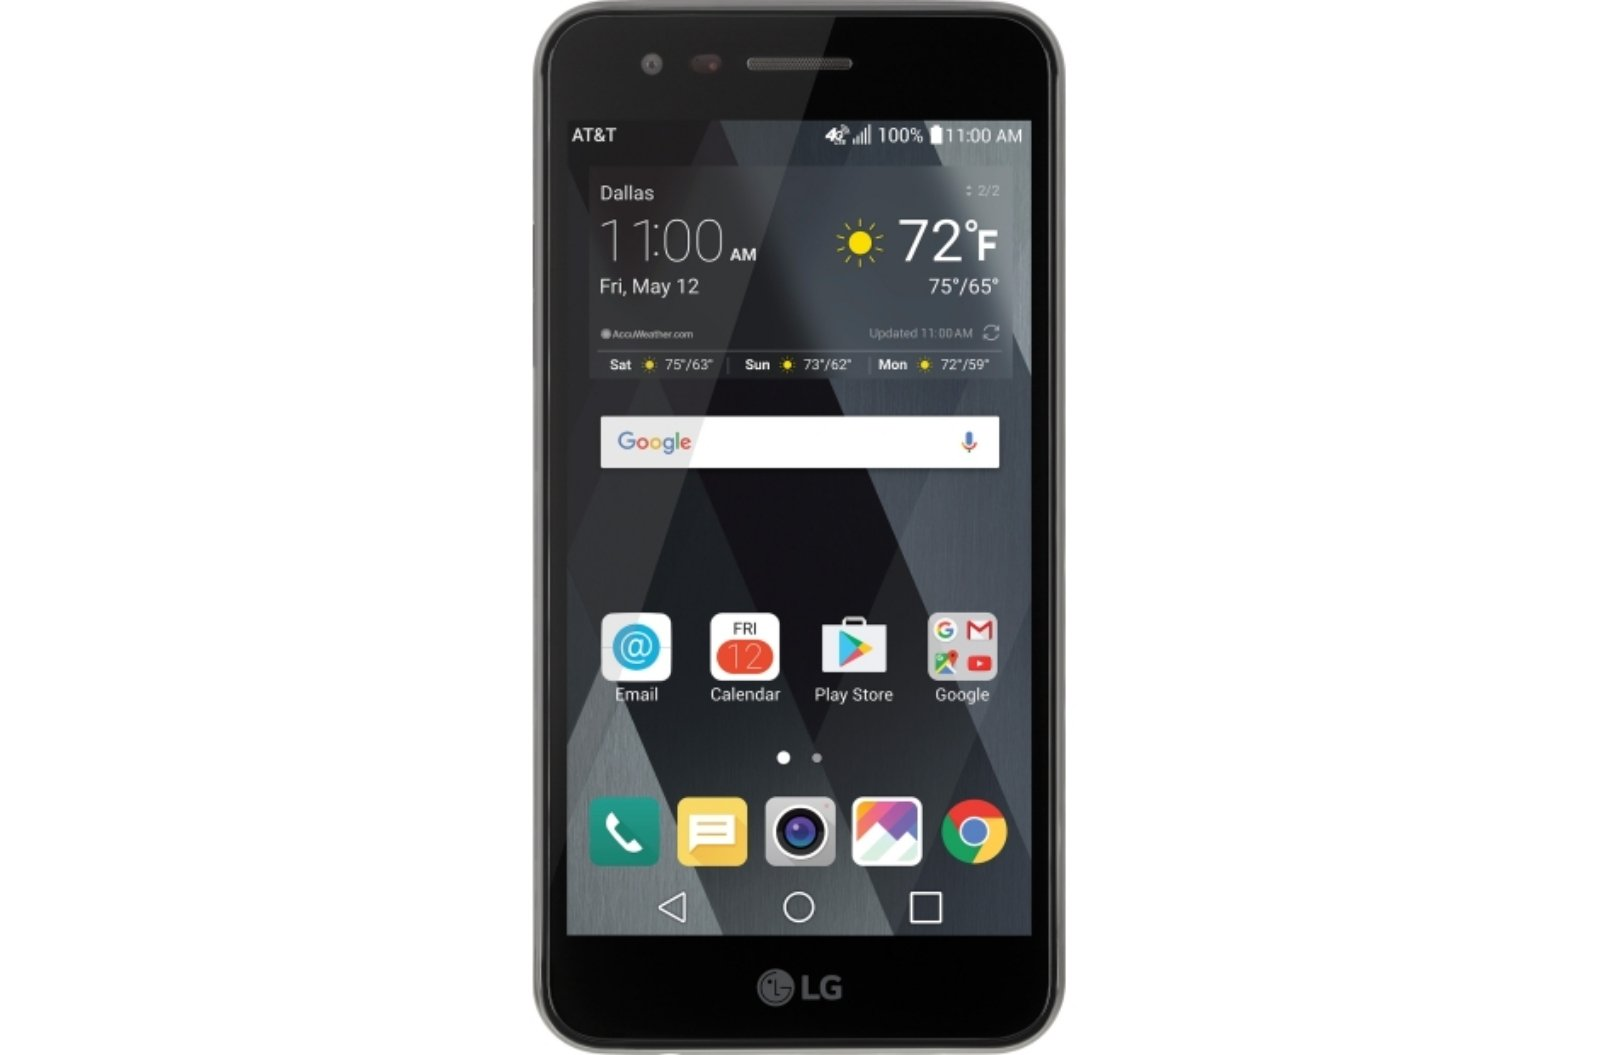 AT&T GoPhone LG Phoenix 3 4G LTE with 16GB Memory Prepaid Cell Phone - Black